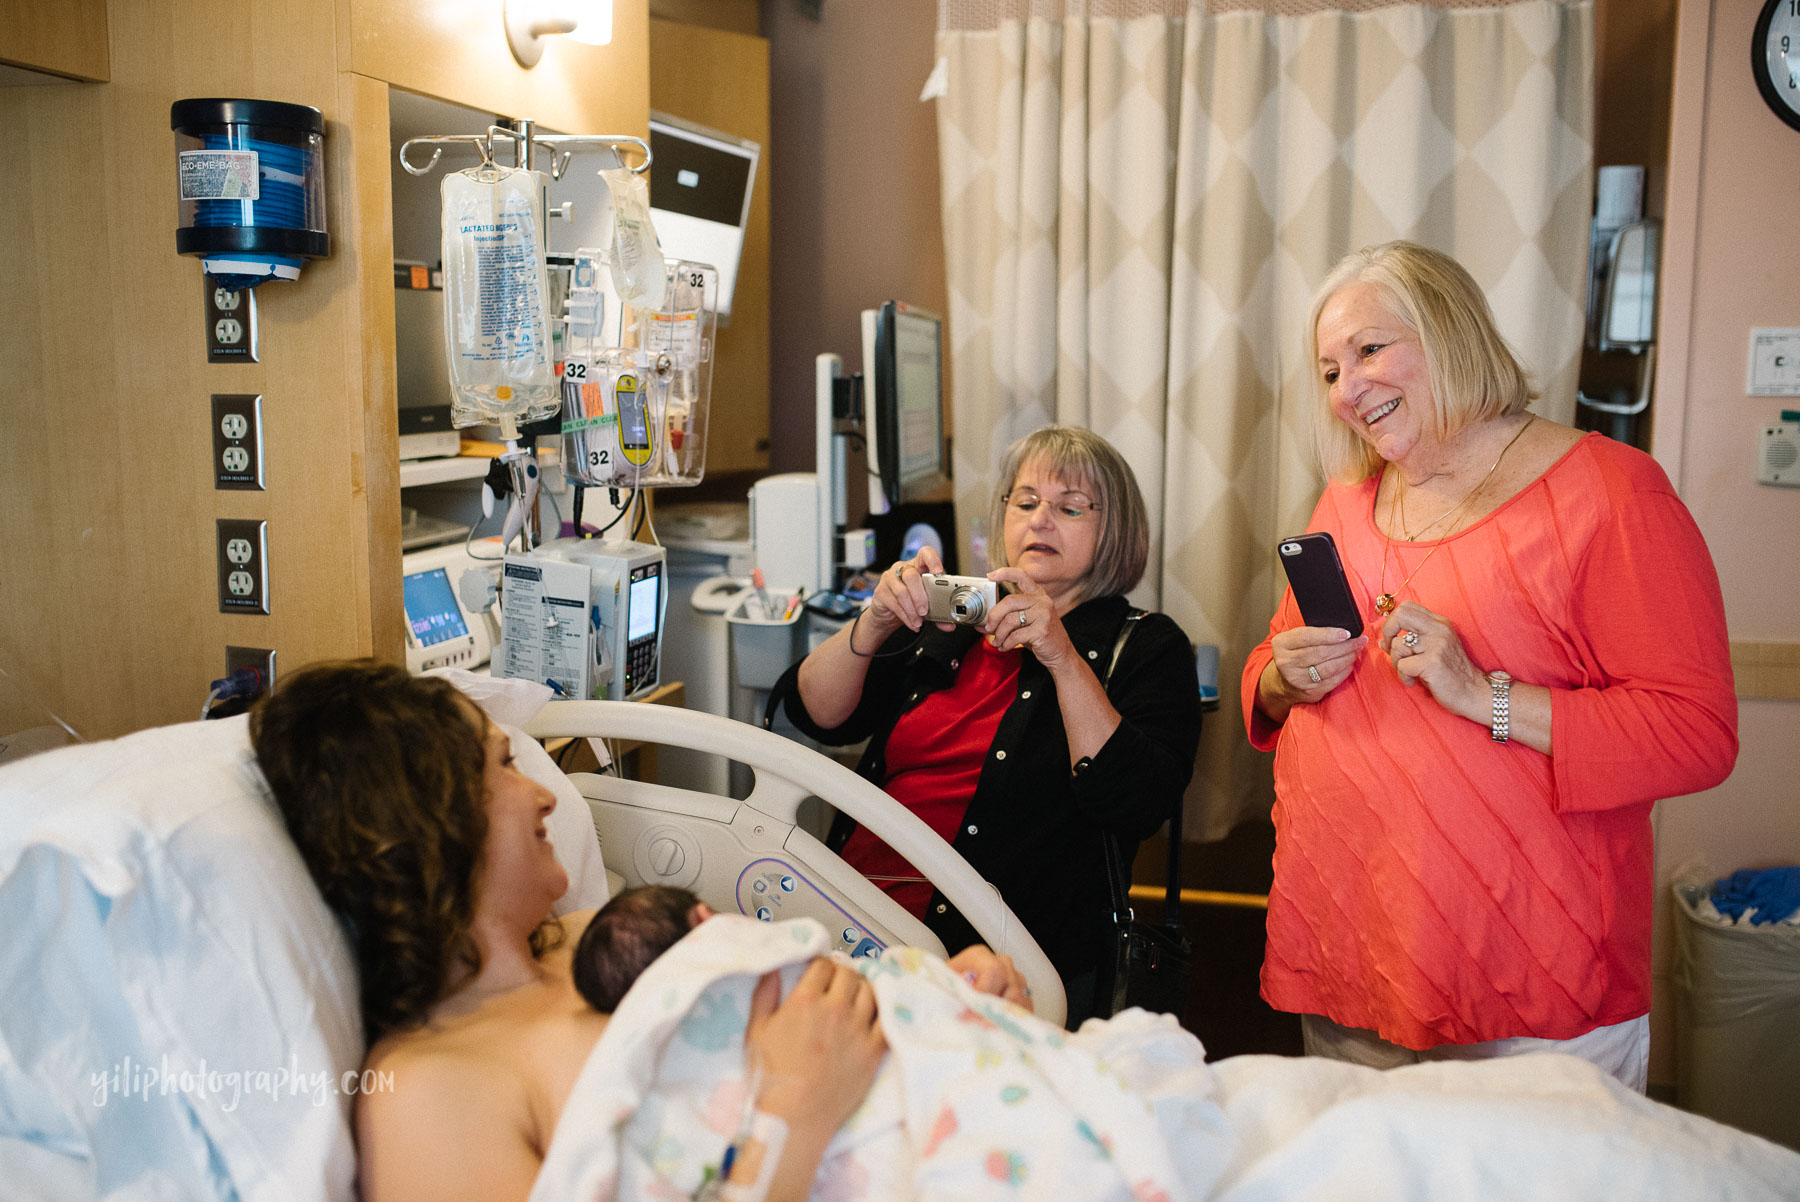 two grandmothers taking photos of their granddaughter after birth in hospital room